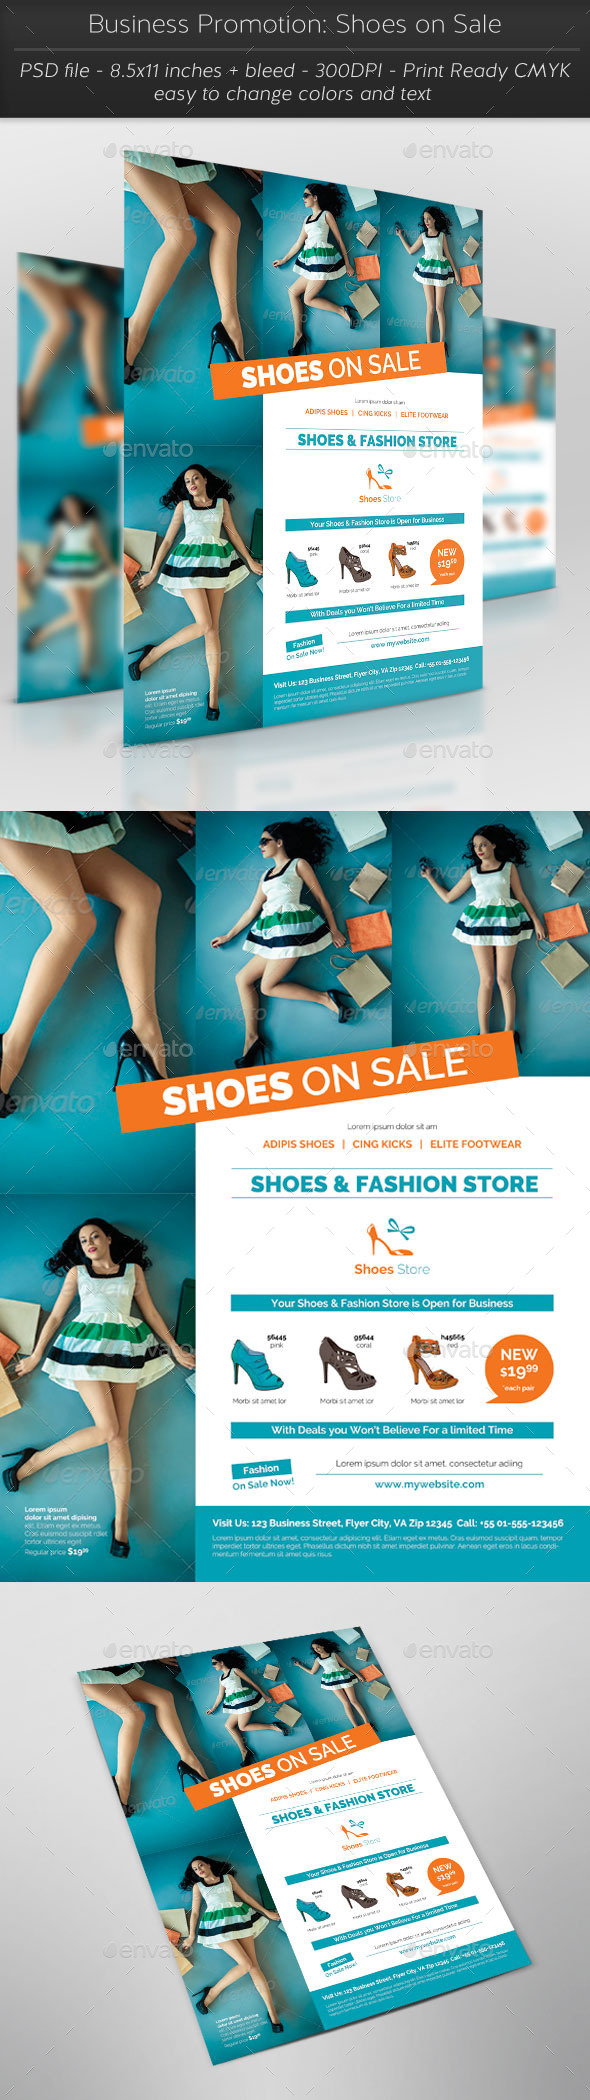 GraphicRiver Business Promotion Shoes on Sale 11783263